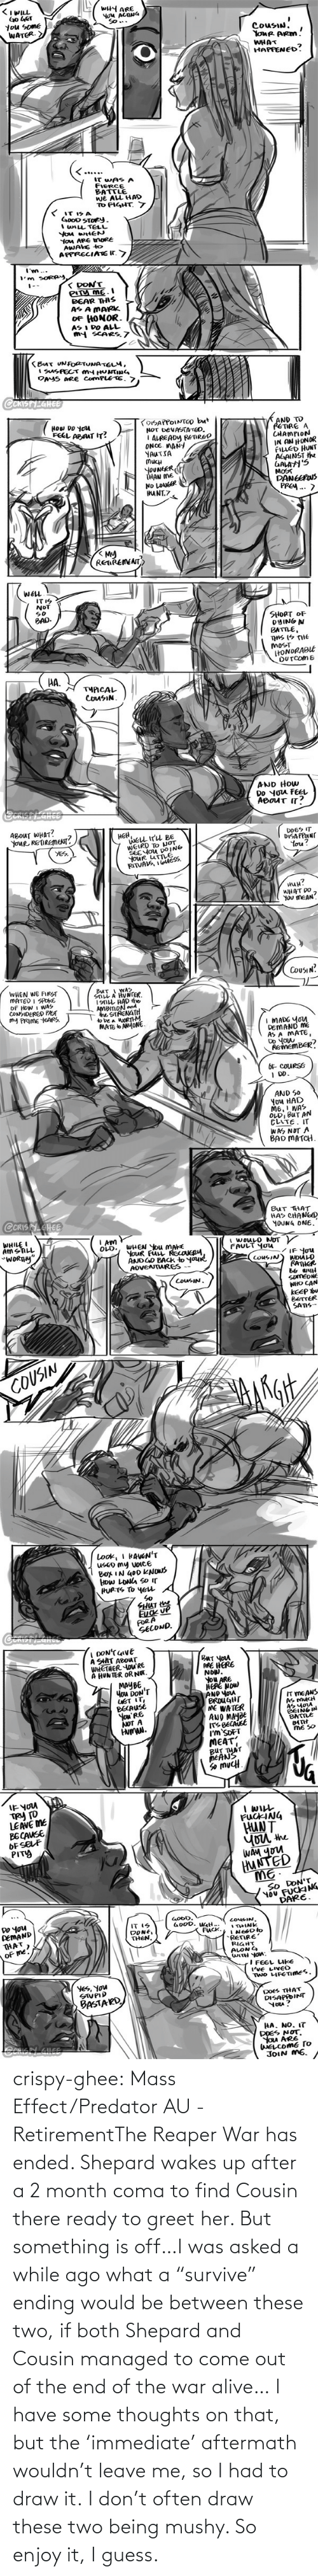 "ready: crispy-ghee:  Mass Effect/Predator AU - RetirementThe Reaper War has ended. Shepard wakes up after a 2 month coma to find Cousin there ready to greet her. But something is off…I was asked a while ago what a ""survive"" ending would be between these two, if both Shepard and Cousin managed to come out of the end of the war alive… I have some thoughts on that, but the 'immediate' aftermath wouldn't leave me, so I had to draw it. I don't often draw these two being mushy. So enjoy it, I guess."